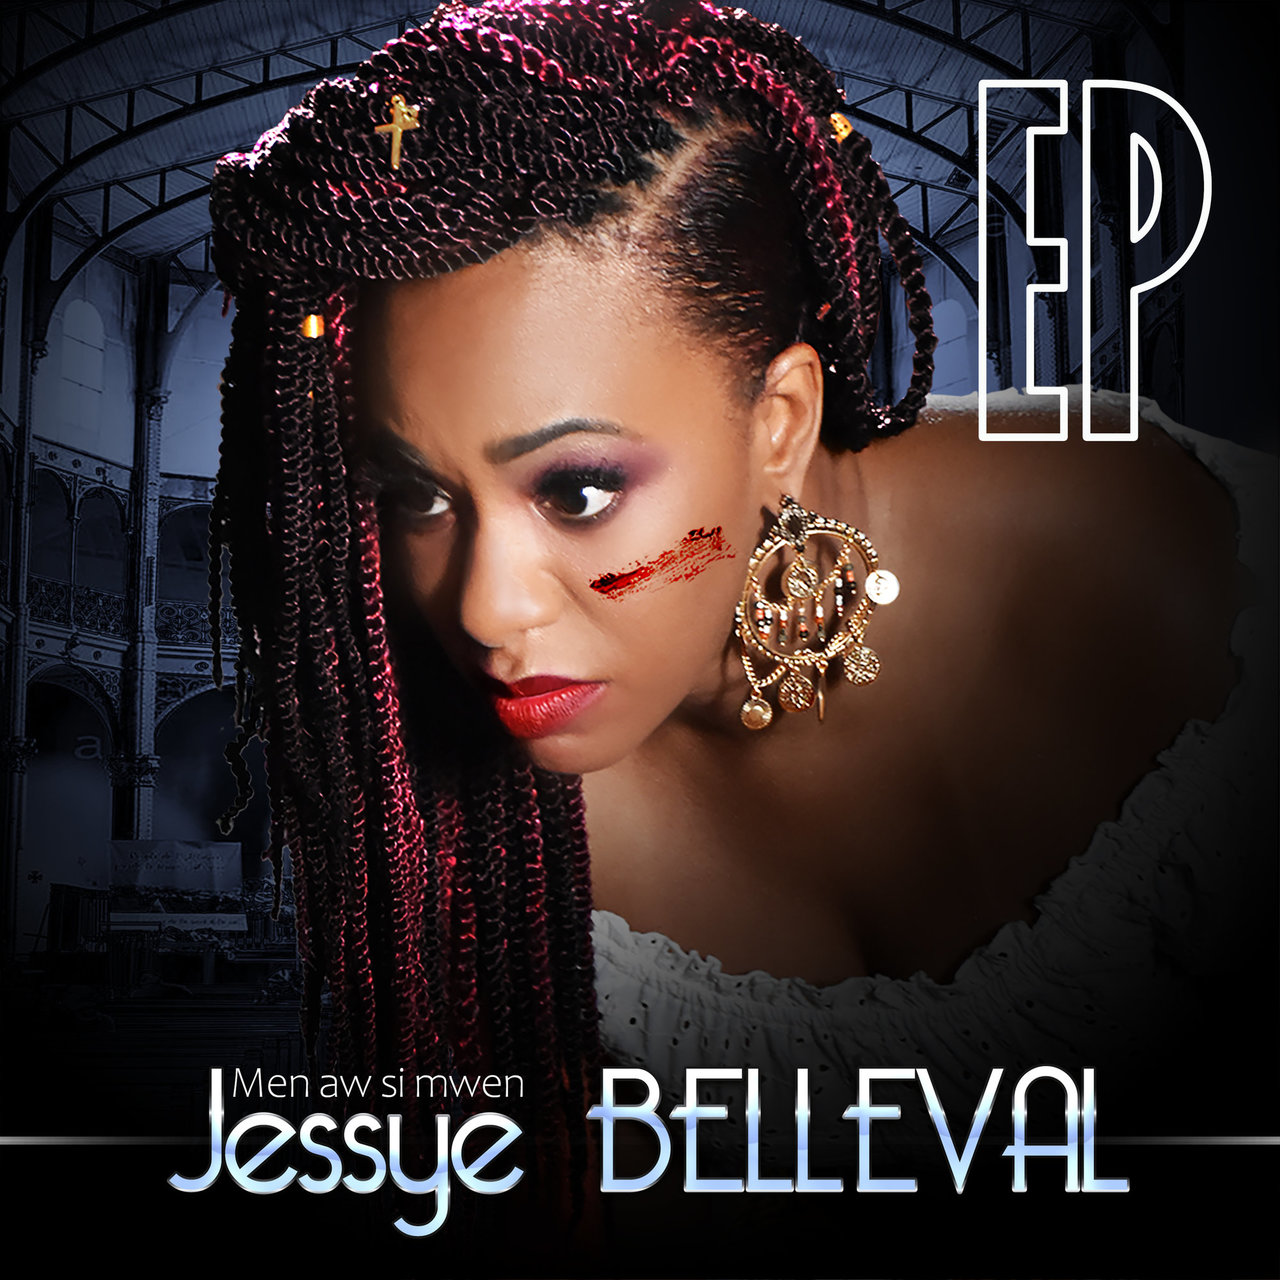 Jessye Belleval - Men Aw Si Mwen (Cover)